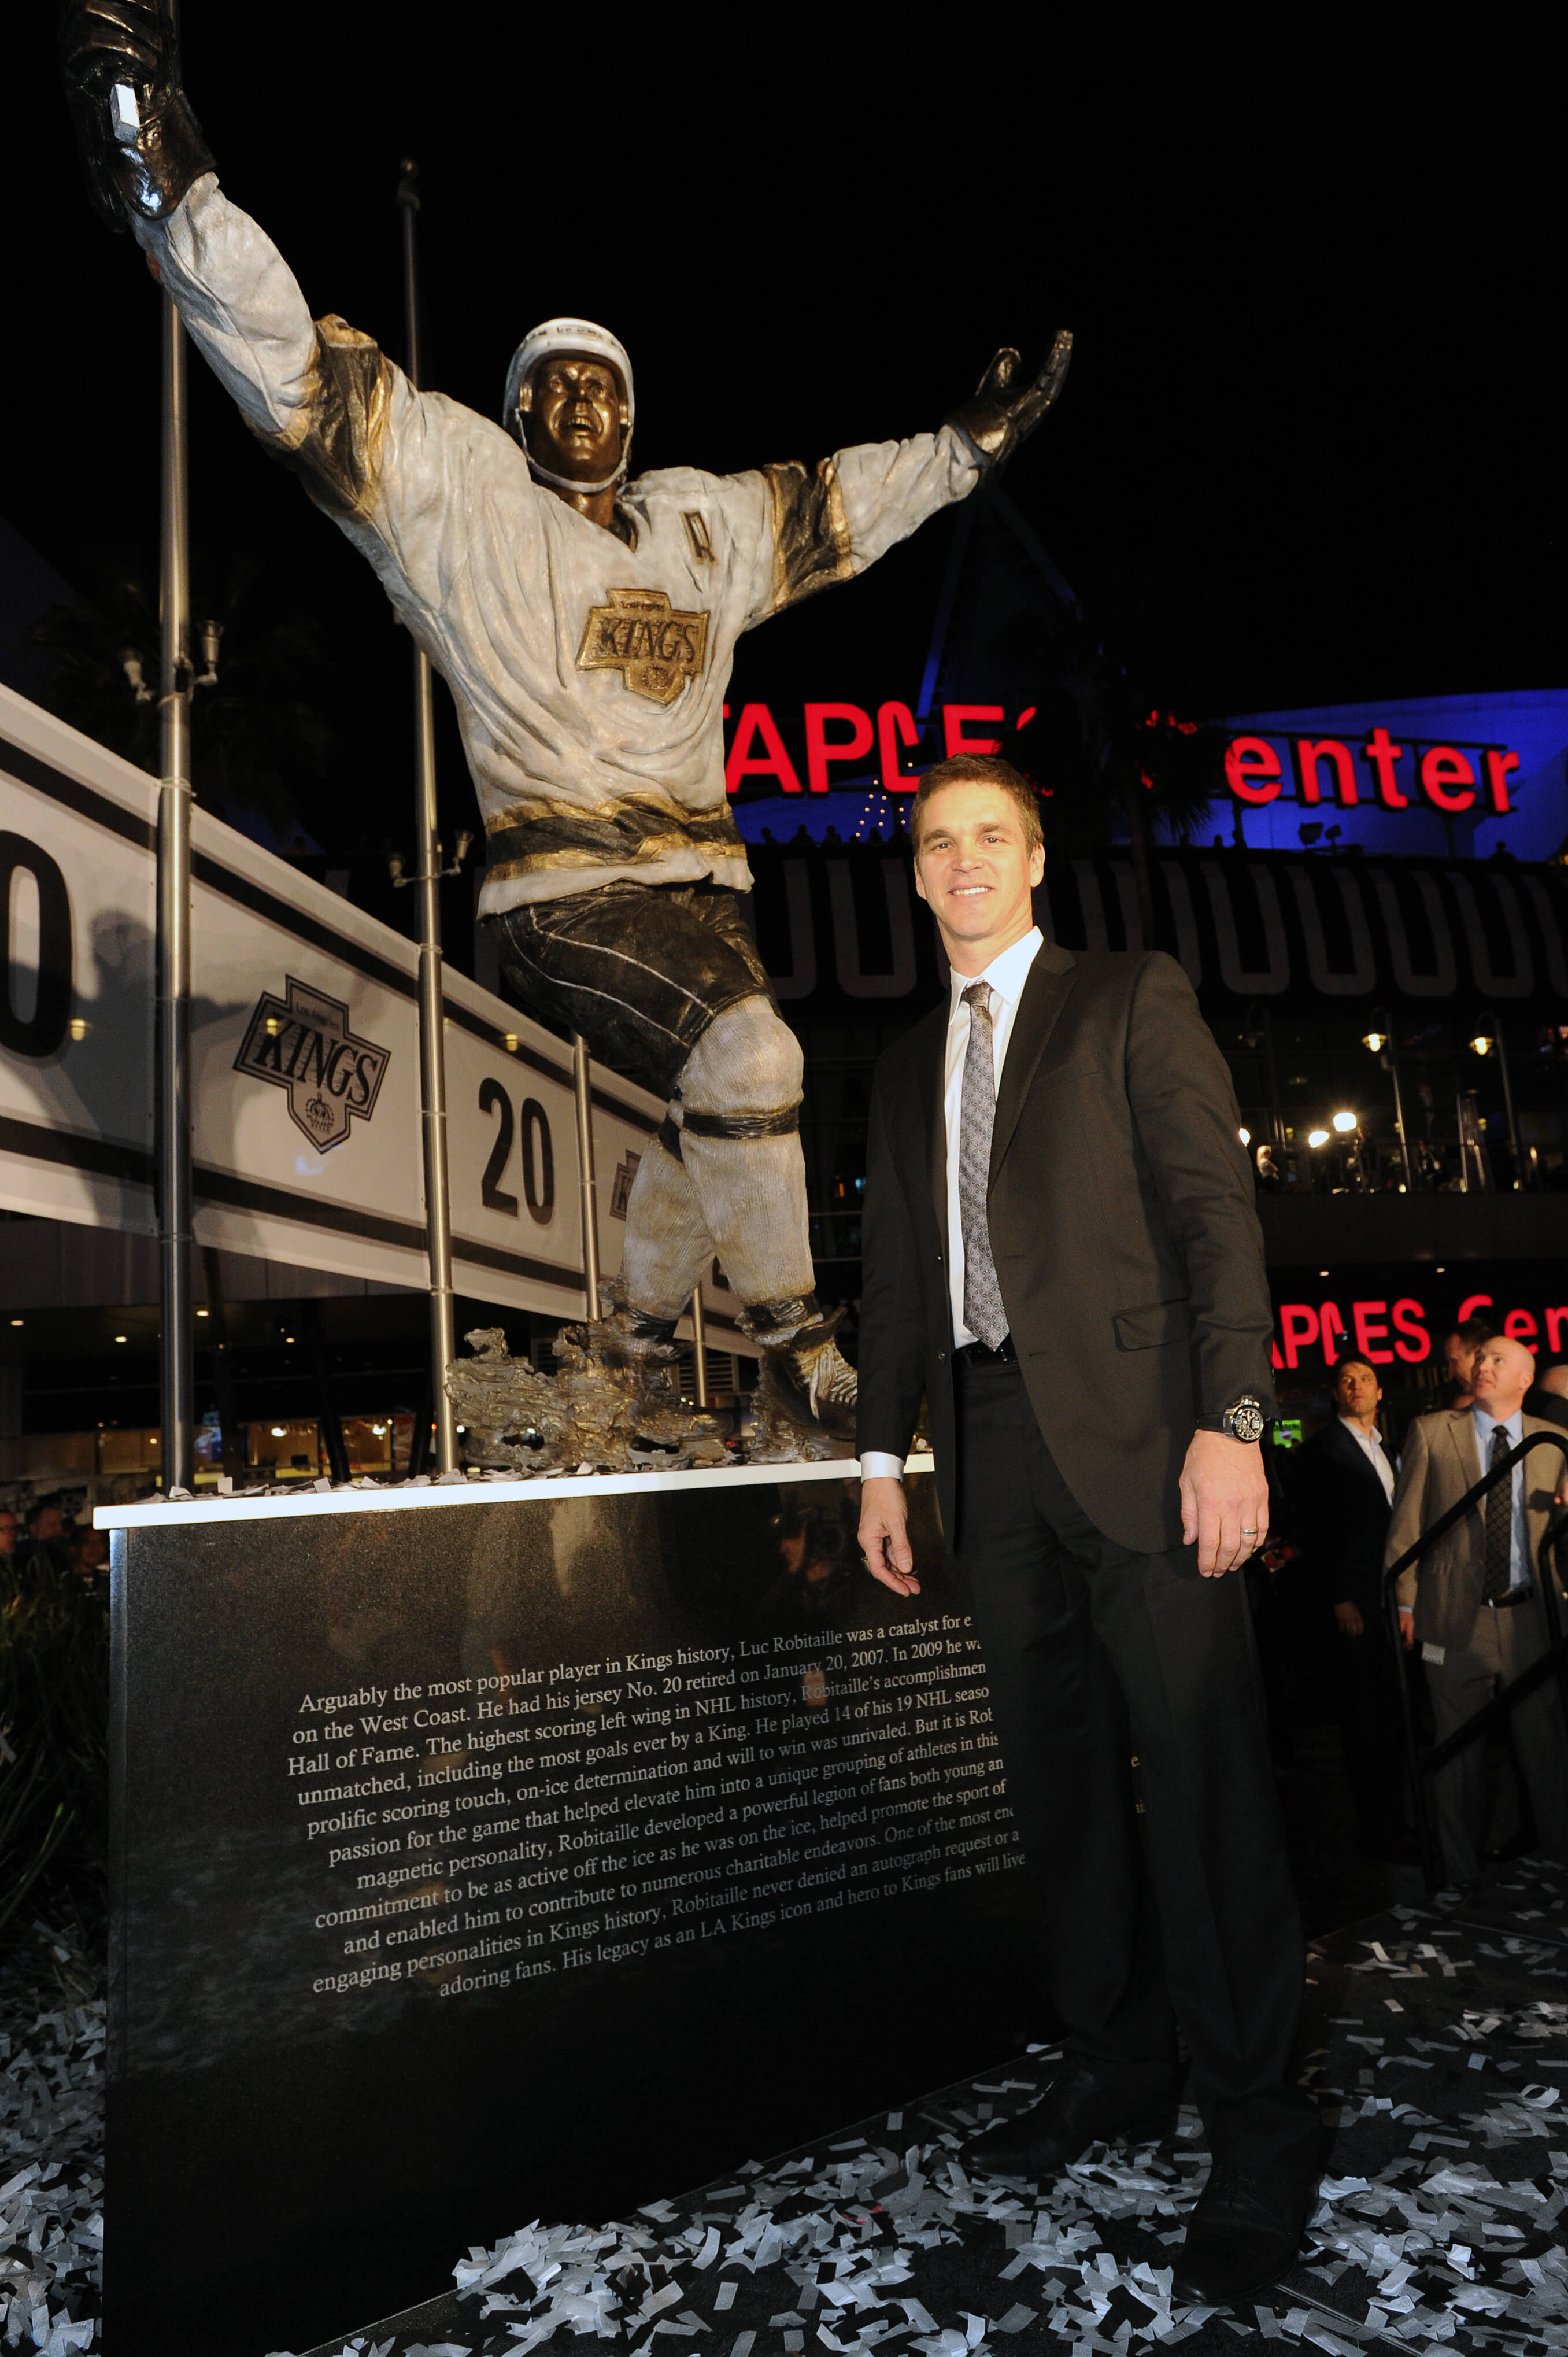 Luc Robitaille statue, LA Kings, NHL, Staples Center